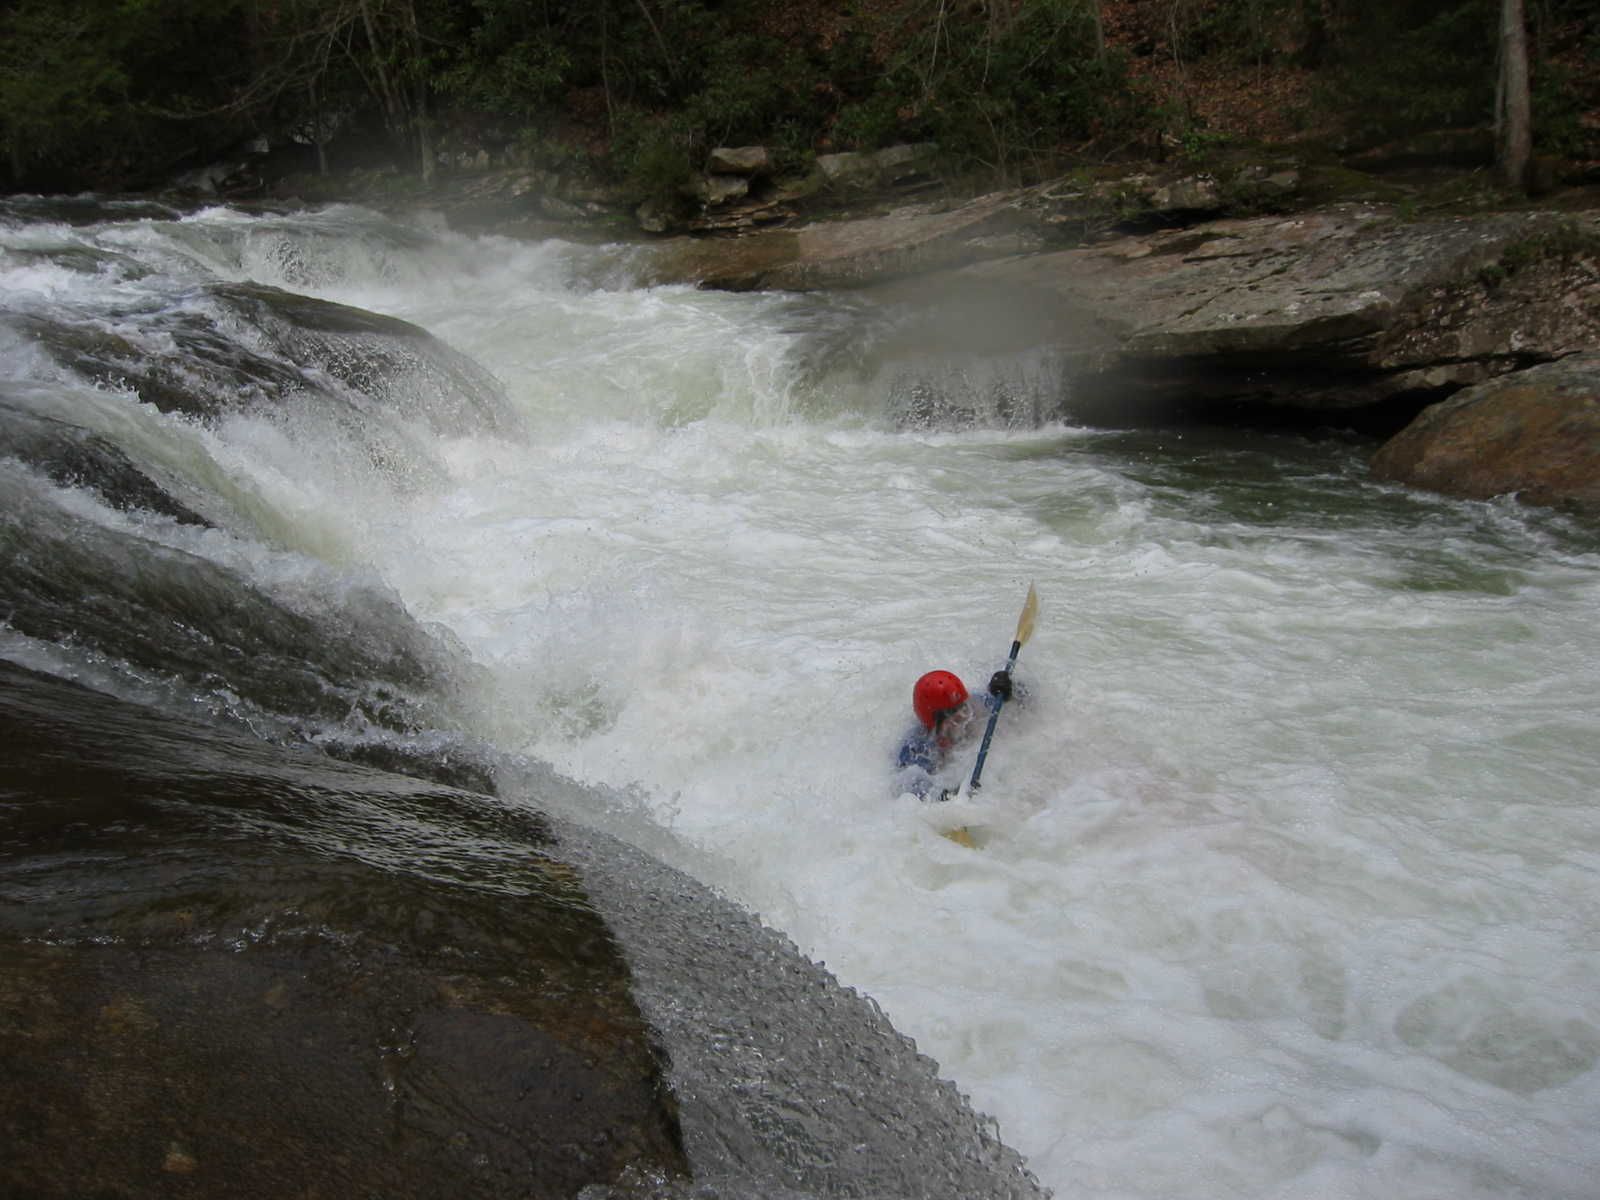 Bob Maxey at bottom of first of the Three Falls a.k.a. Lunch Ledge (Photo by Scott Gravatt - 4/27/04)